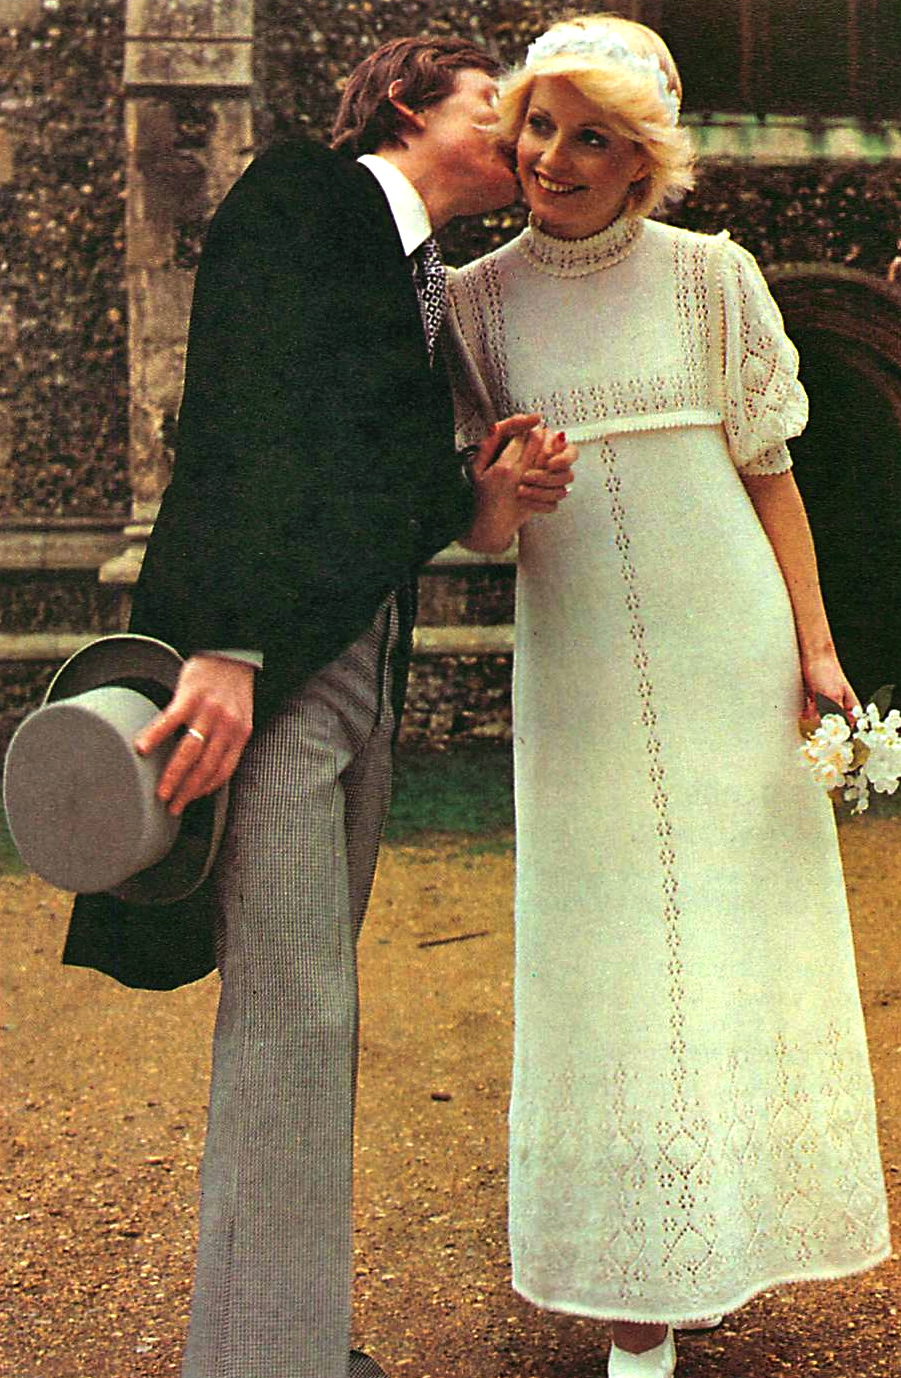 vintage s mod style wedding dress knitting pattern how to make a knitted wedding dress vintage wedding dress patterns 01 03 15 46 02 pdf